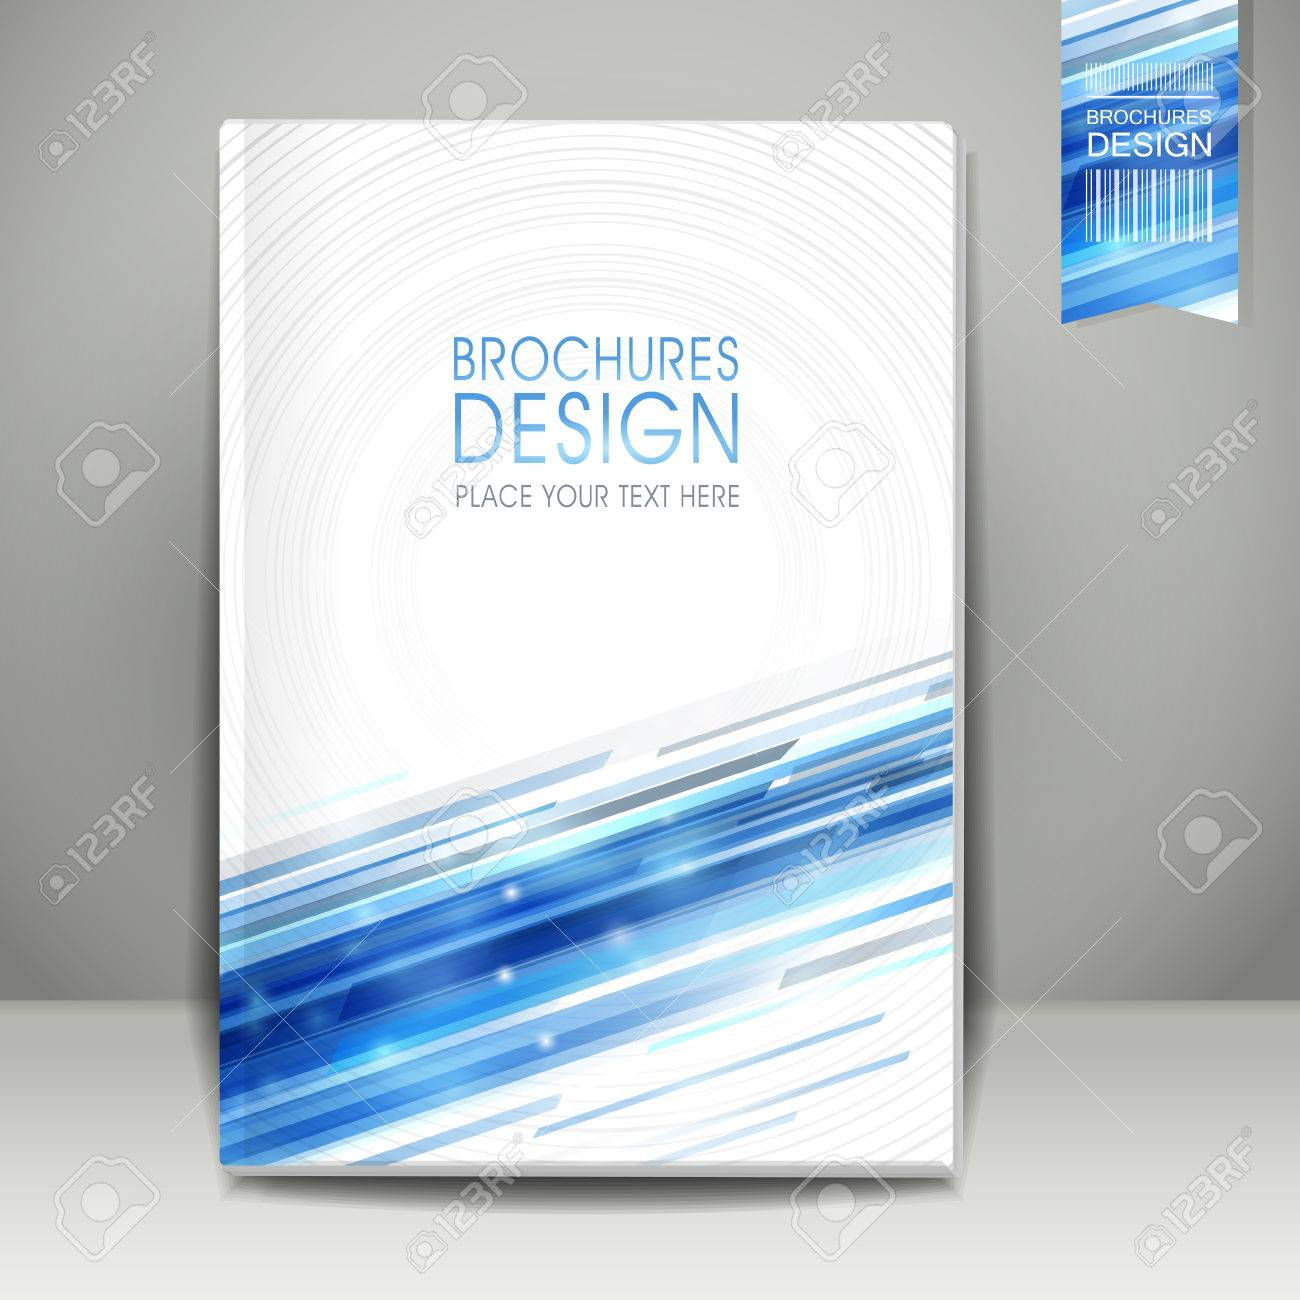 abstract technology background design for book cover template vector abstract technology background design for book cover template